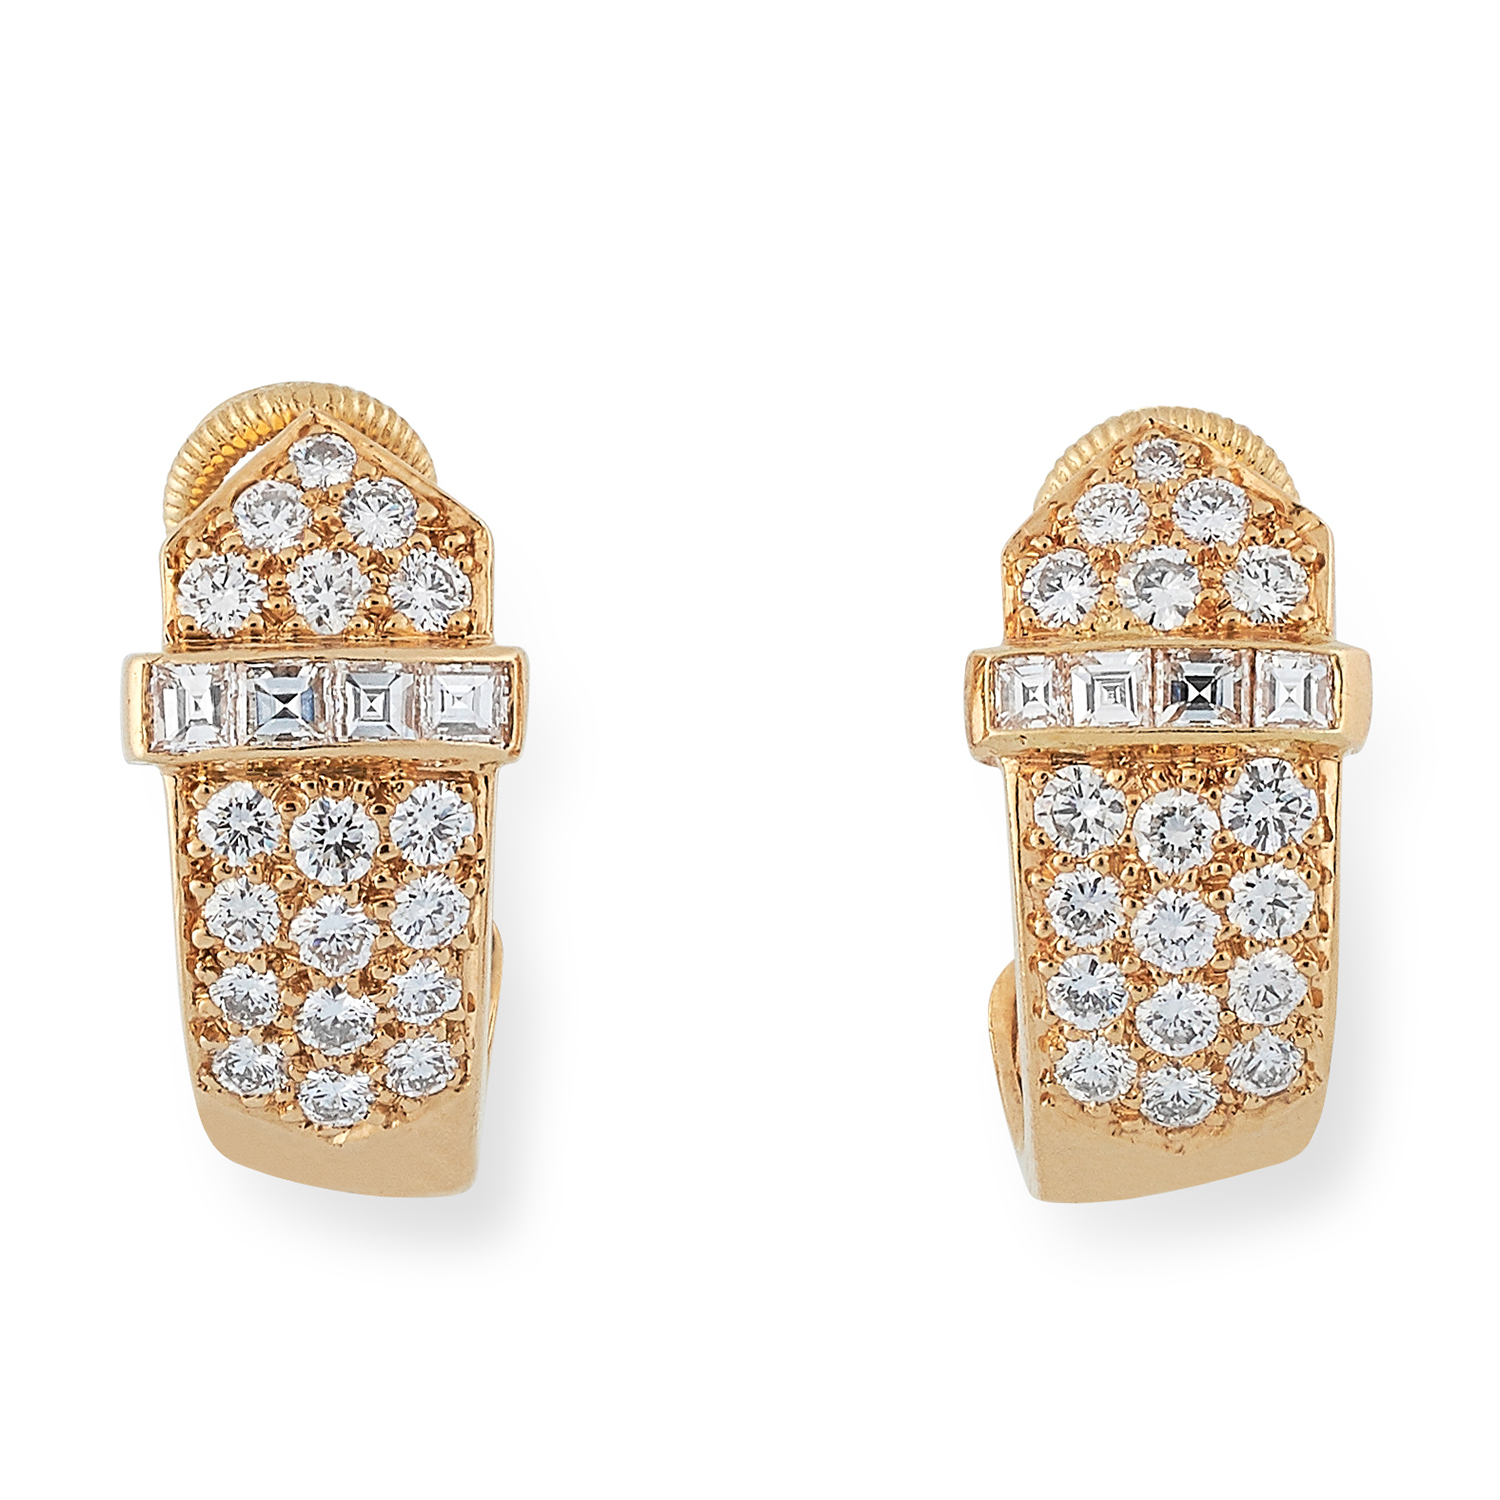 Los 2 - 1.00 CARAT DIAMOND EARRINGS, DAVID MORRIS in buckle motif set with round cut diamonds totalling